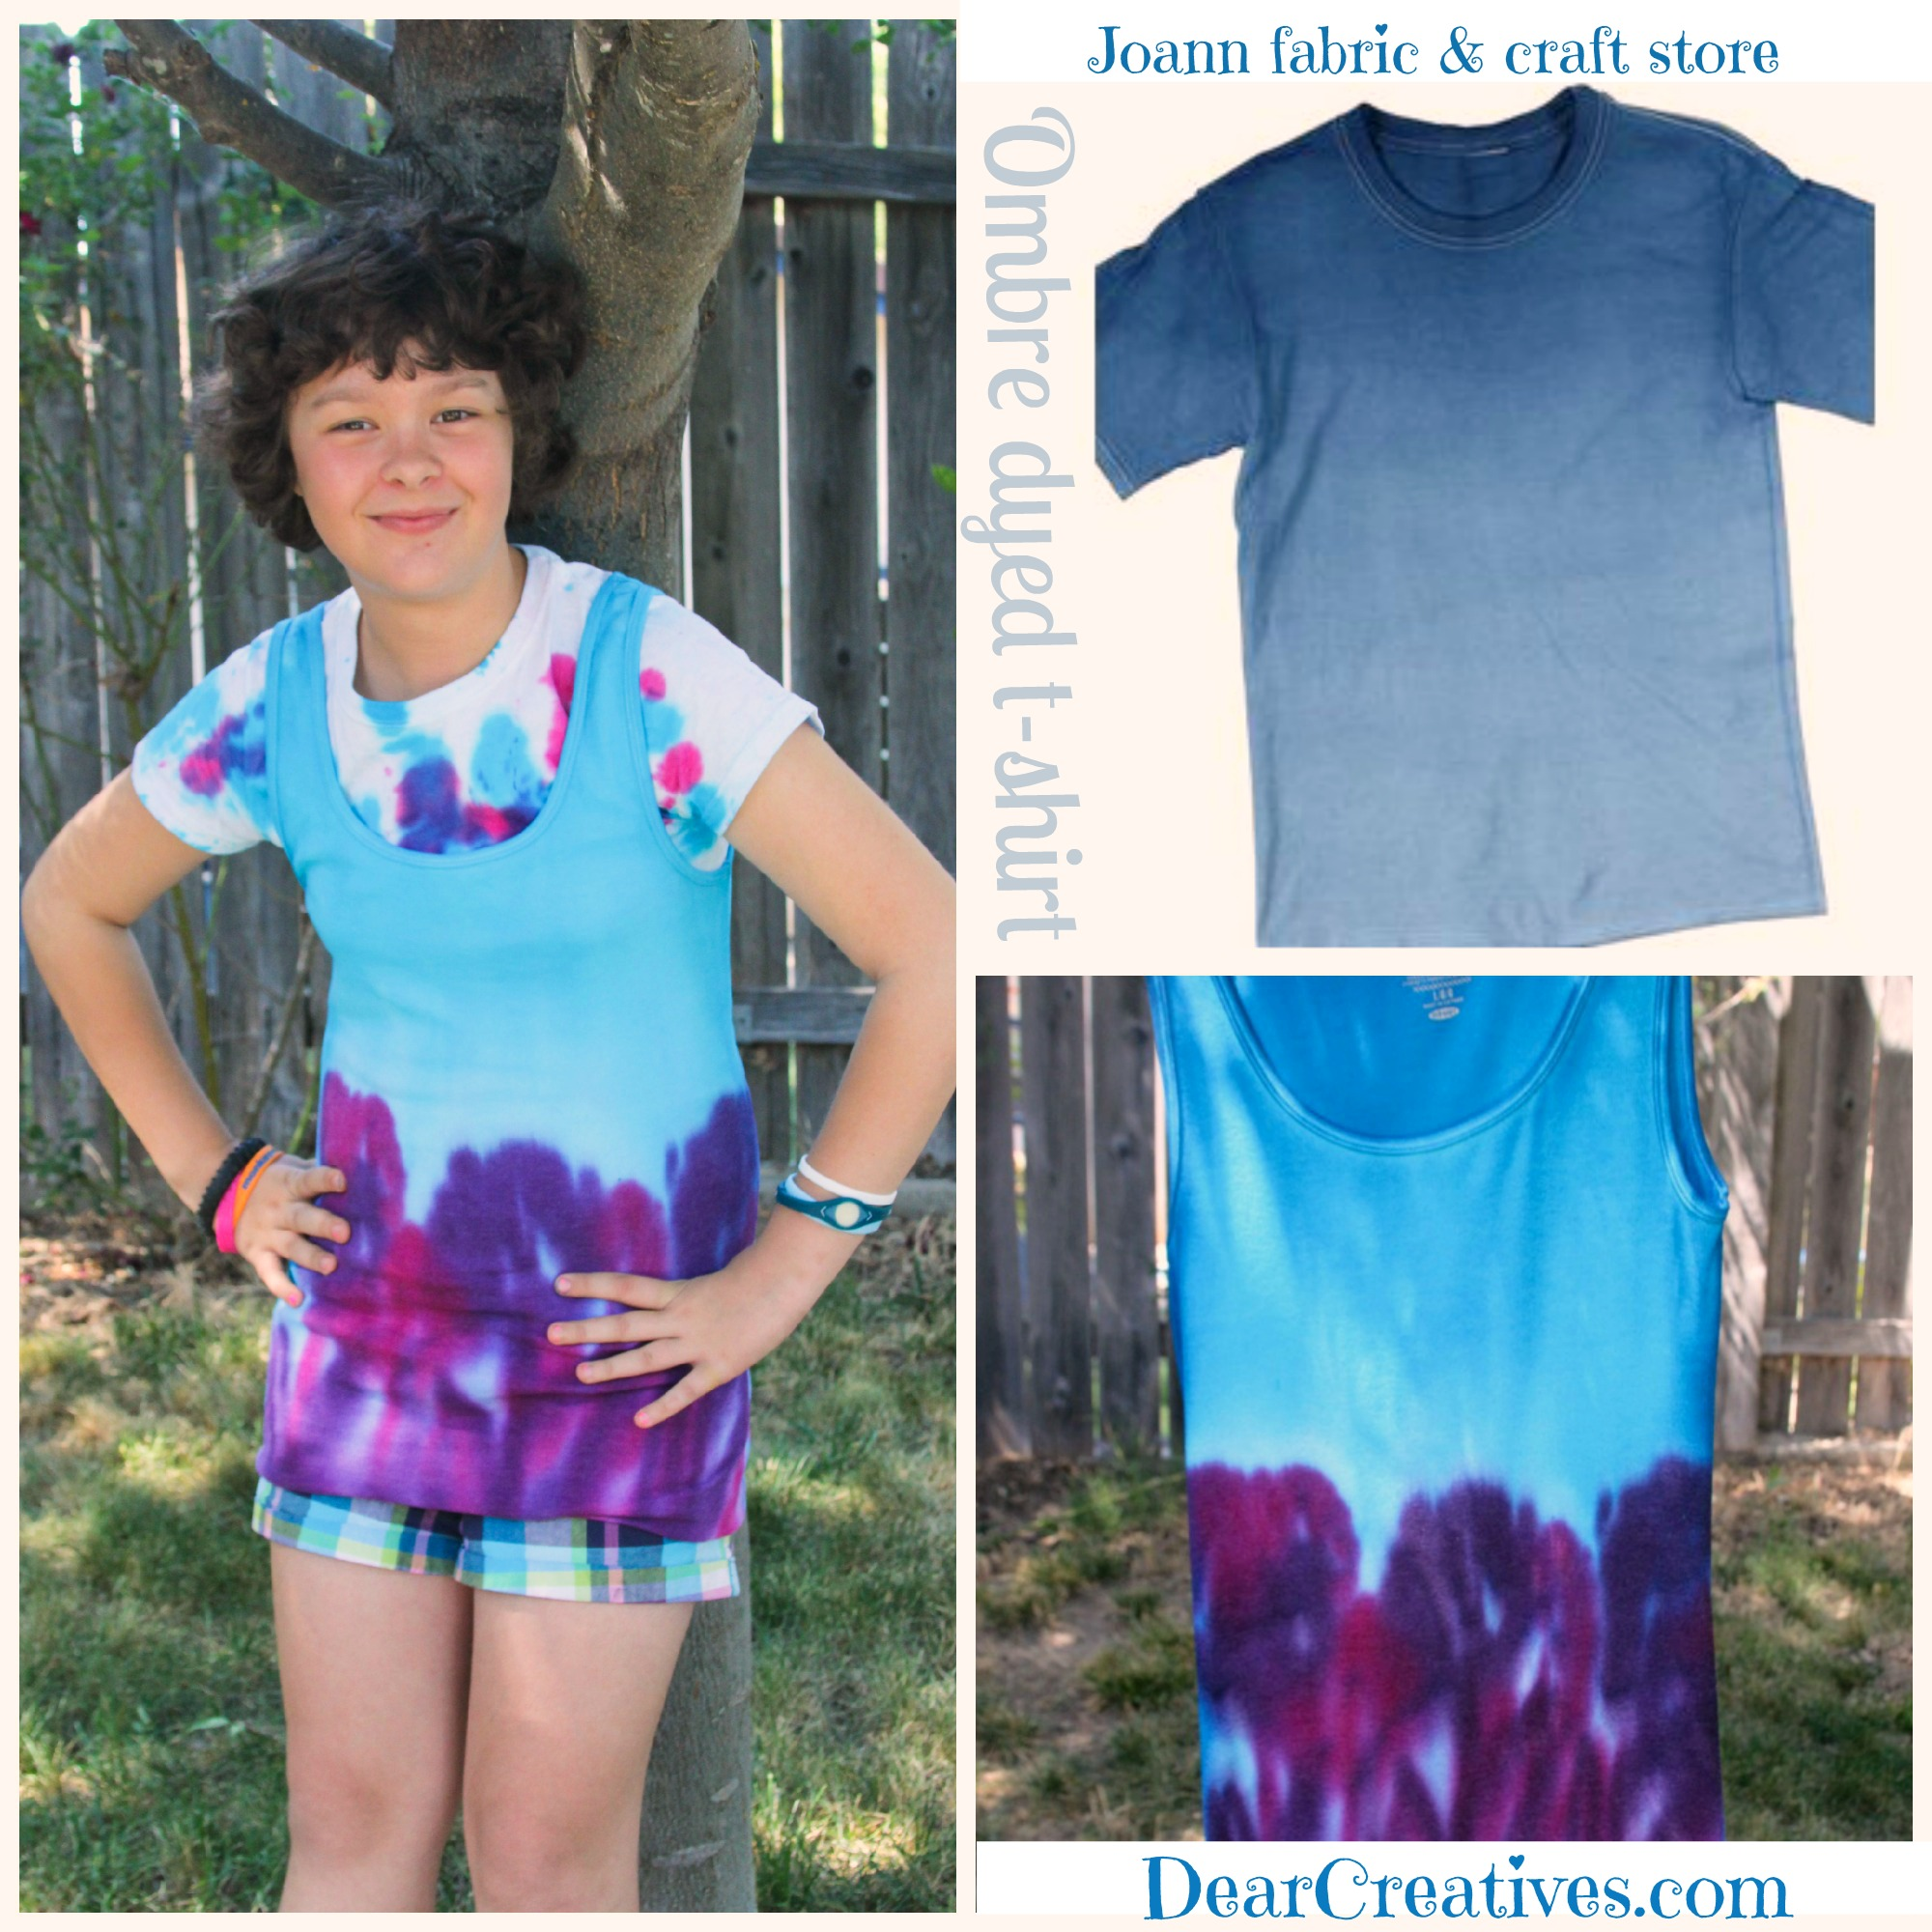 Side By Side Comparison Ombre T-Shirt Joann.com vs Ombre T-Shirt DearCreatives.com , girl wearing tie dyed t-shirt  © 2013 Theresa Huse